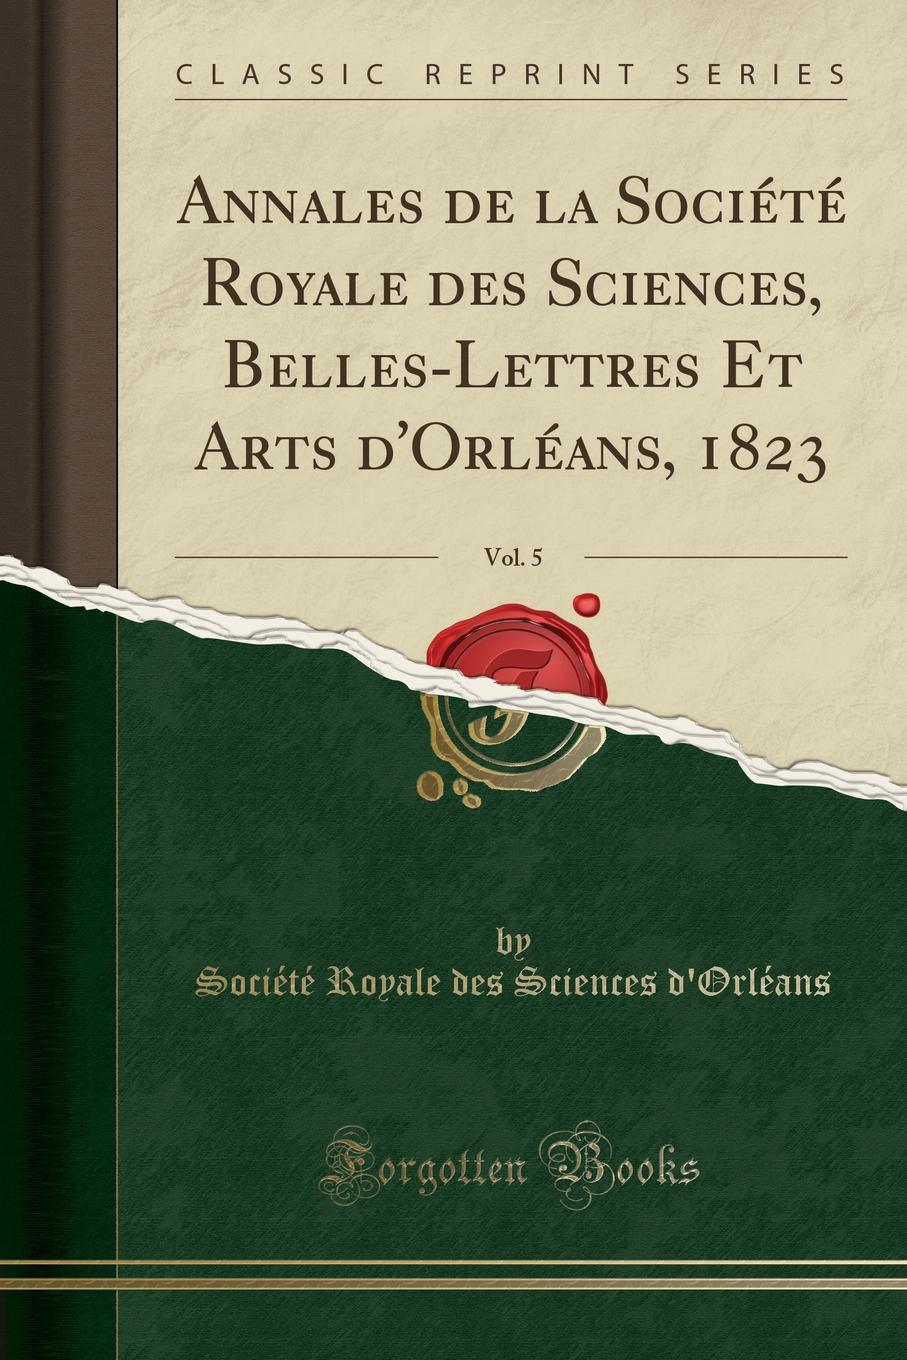 Annales de la Societe Royale des Sciences, Belles-Lettres Et Arts d.Orleans, 1823, Vol. 5 (Classic Reprint) Excerpt from Annales de la SociР?tР? Royale des Sciences...